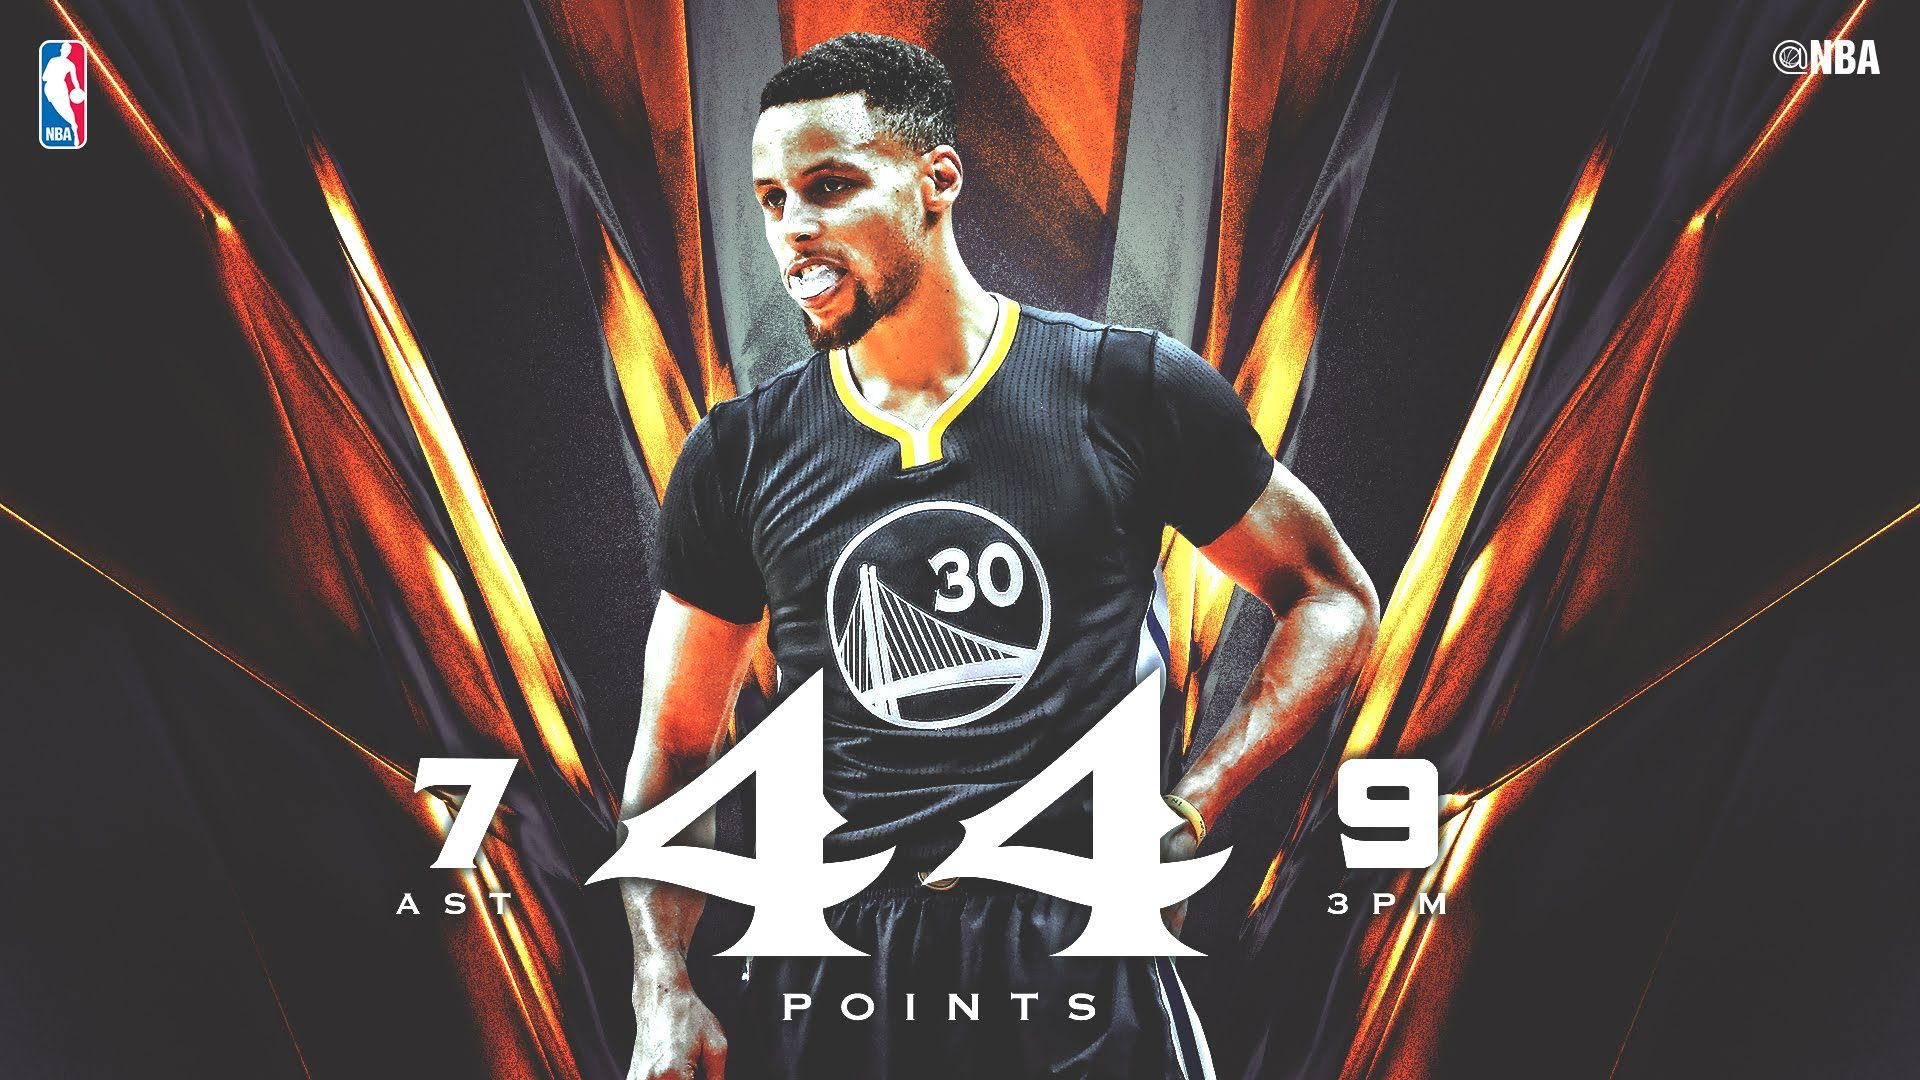 1920x1080 Stephen Curry Shooting Backgrounds ~ Festival Wallpaper